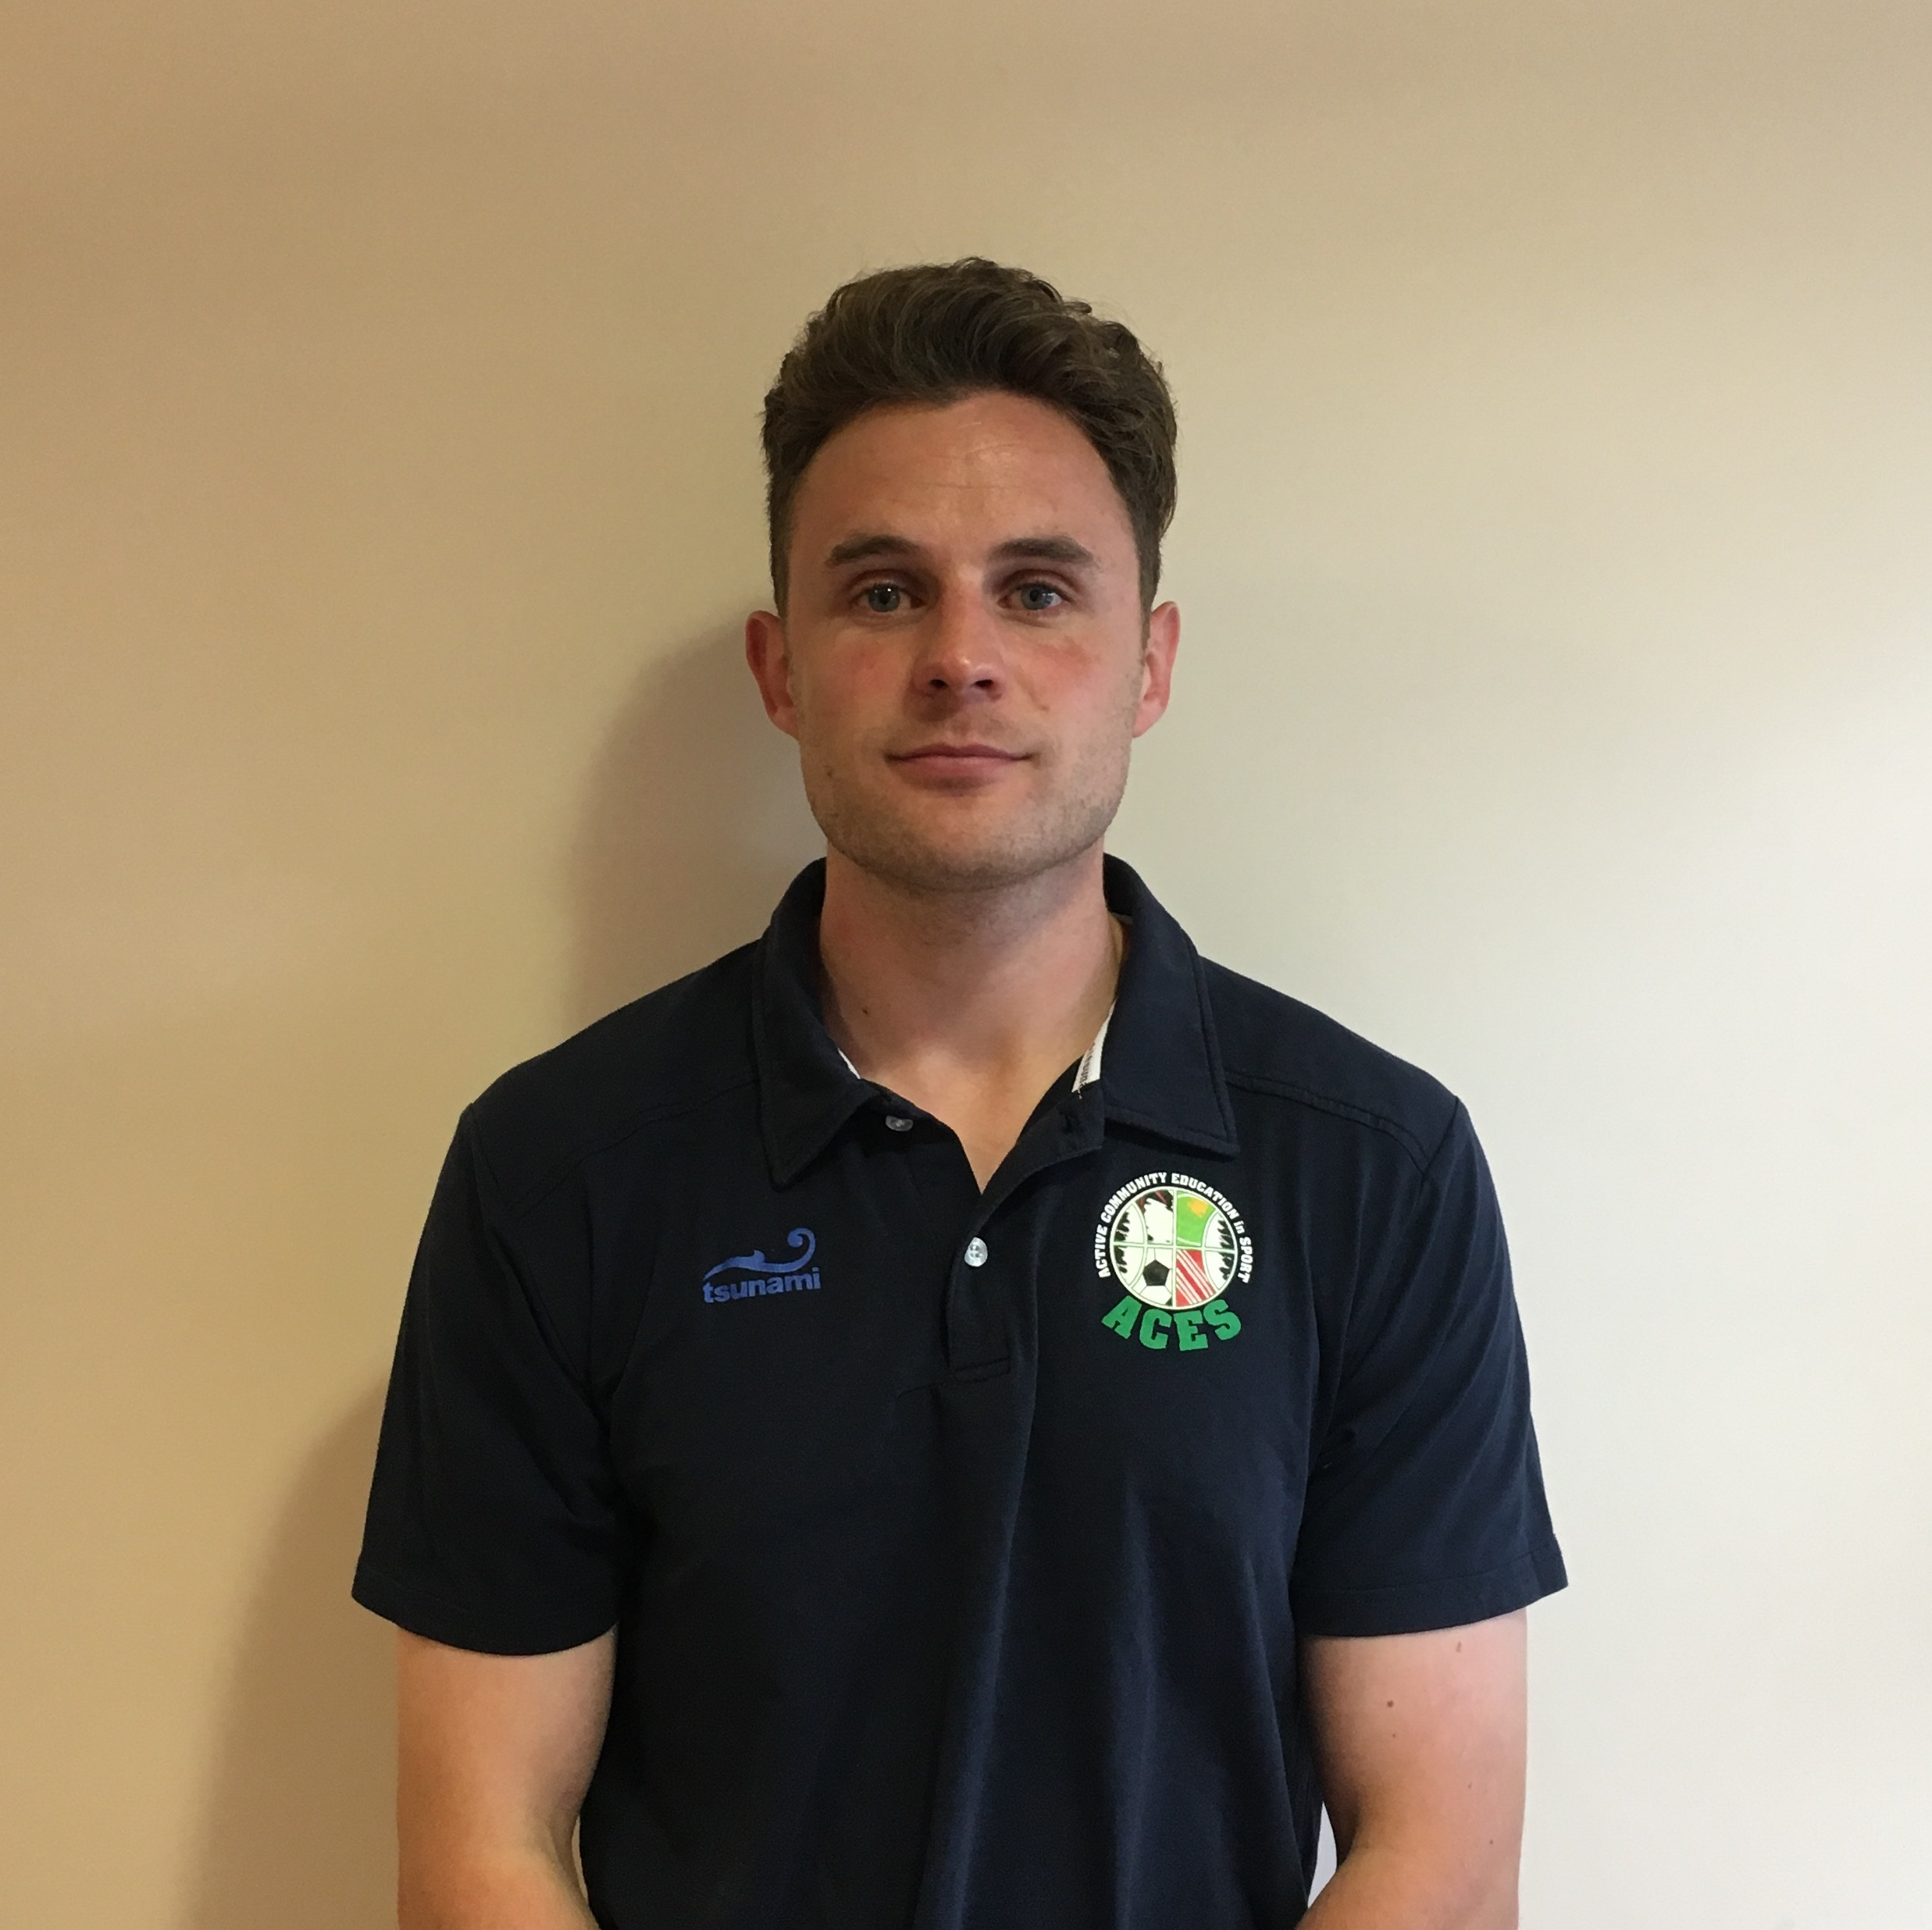 Ryan Sledge  Active: Director.    ACES Team Leader.     Qualifications:   Bsc (Hons) in Sport, Health & Exercise. PGC in Sports & Rehabilitation. SQA in Massage    Representative:   Abertay University Football team, Dundee United Community Coach. Fitness Coach at Lincoln City FC.